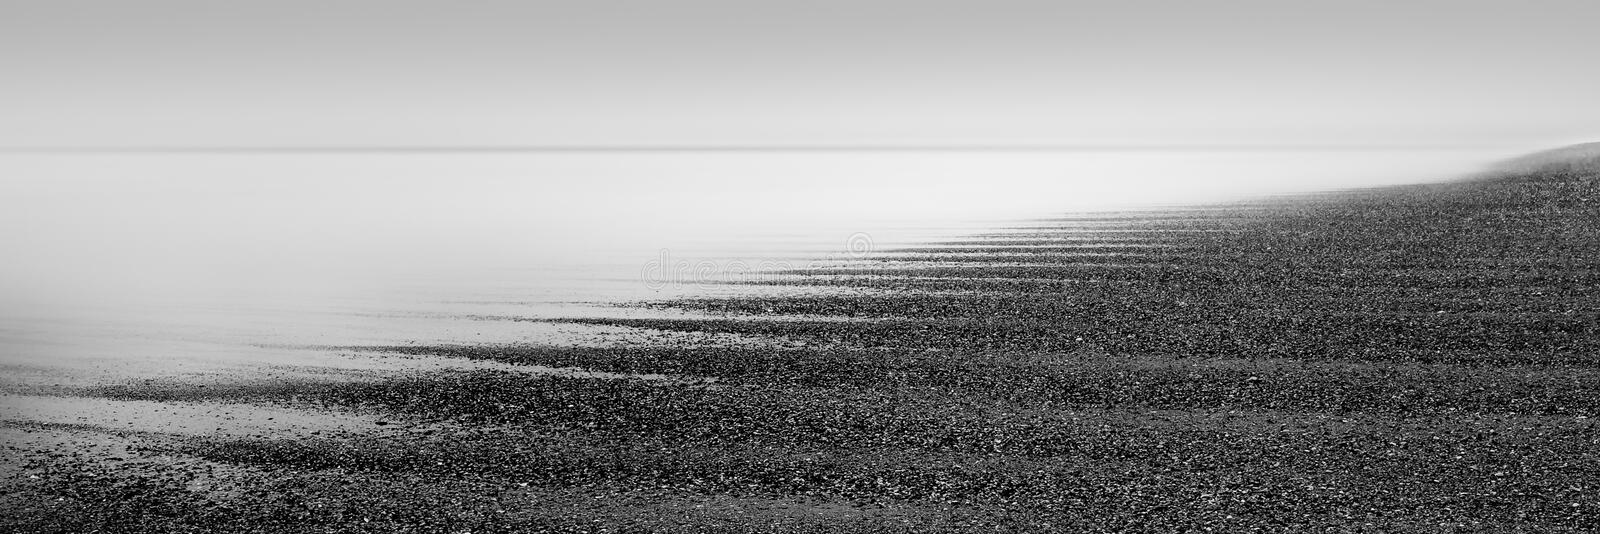 Shingle and Mist on Cornwall beach, UK. Shingle and Mist on North Cornwall beach, UK. High contrast photograph, captured in black and white royalty free stock photography